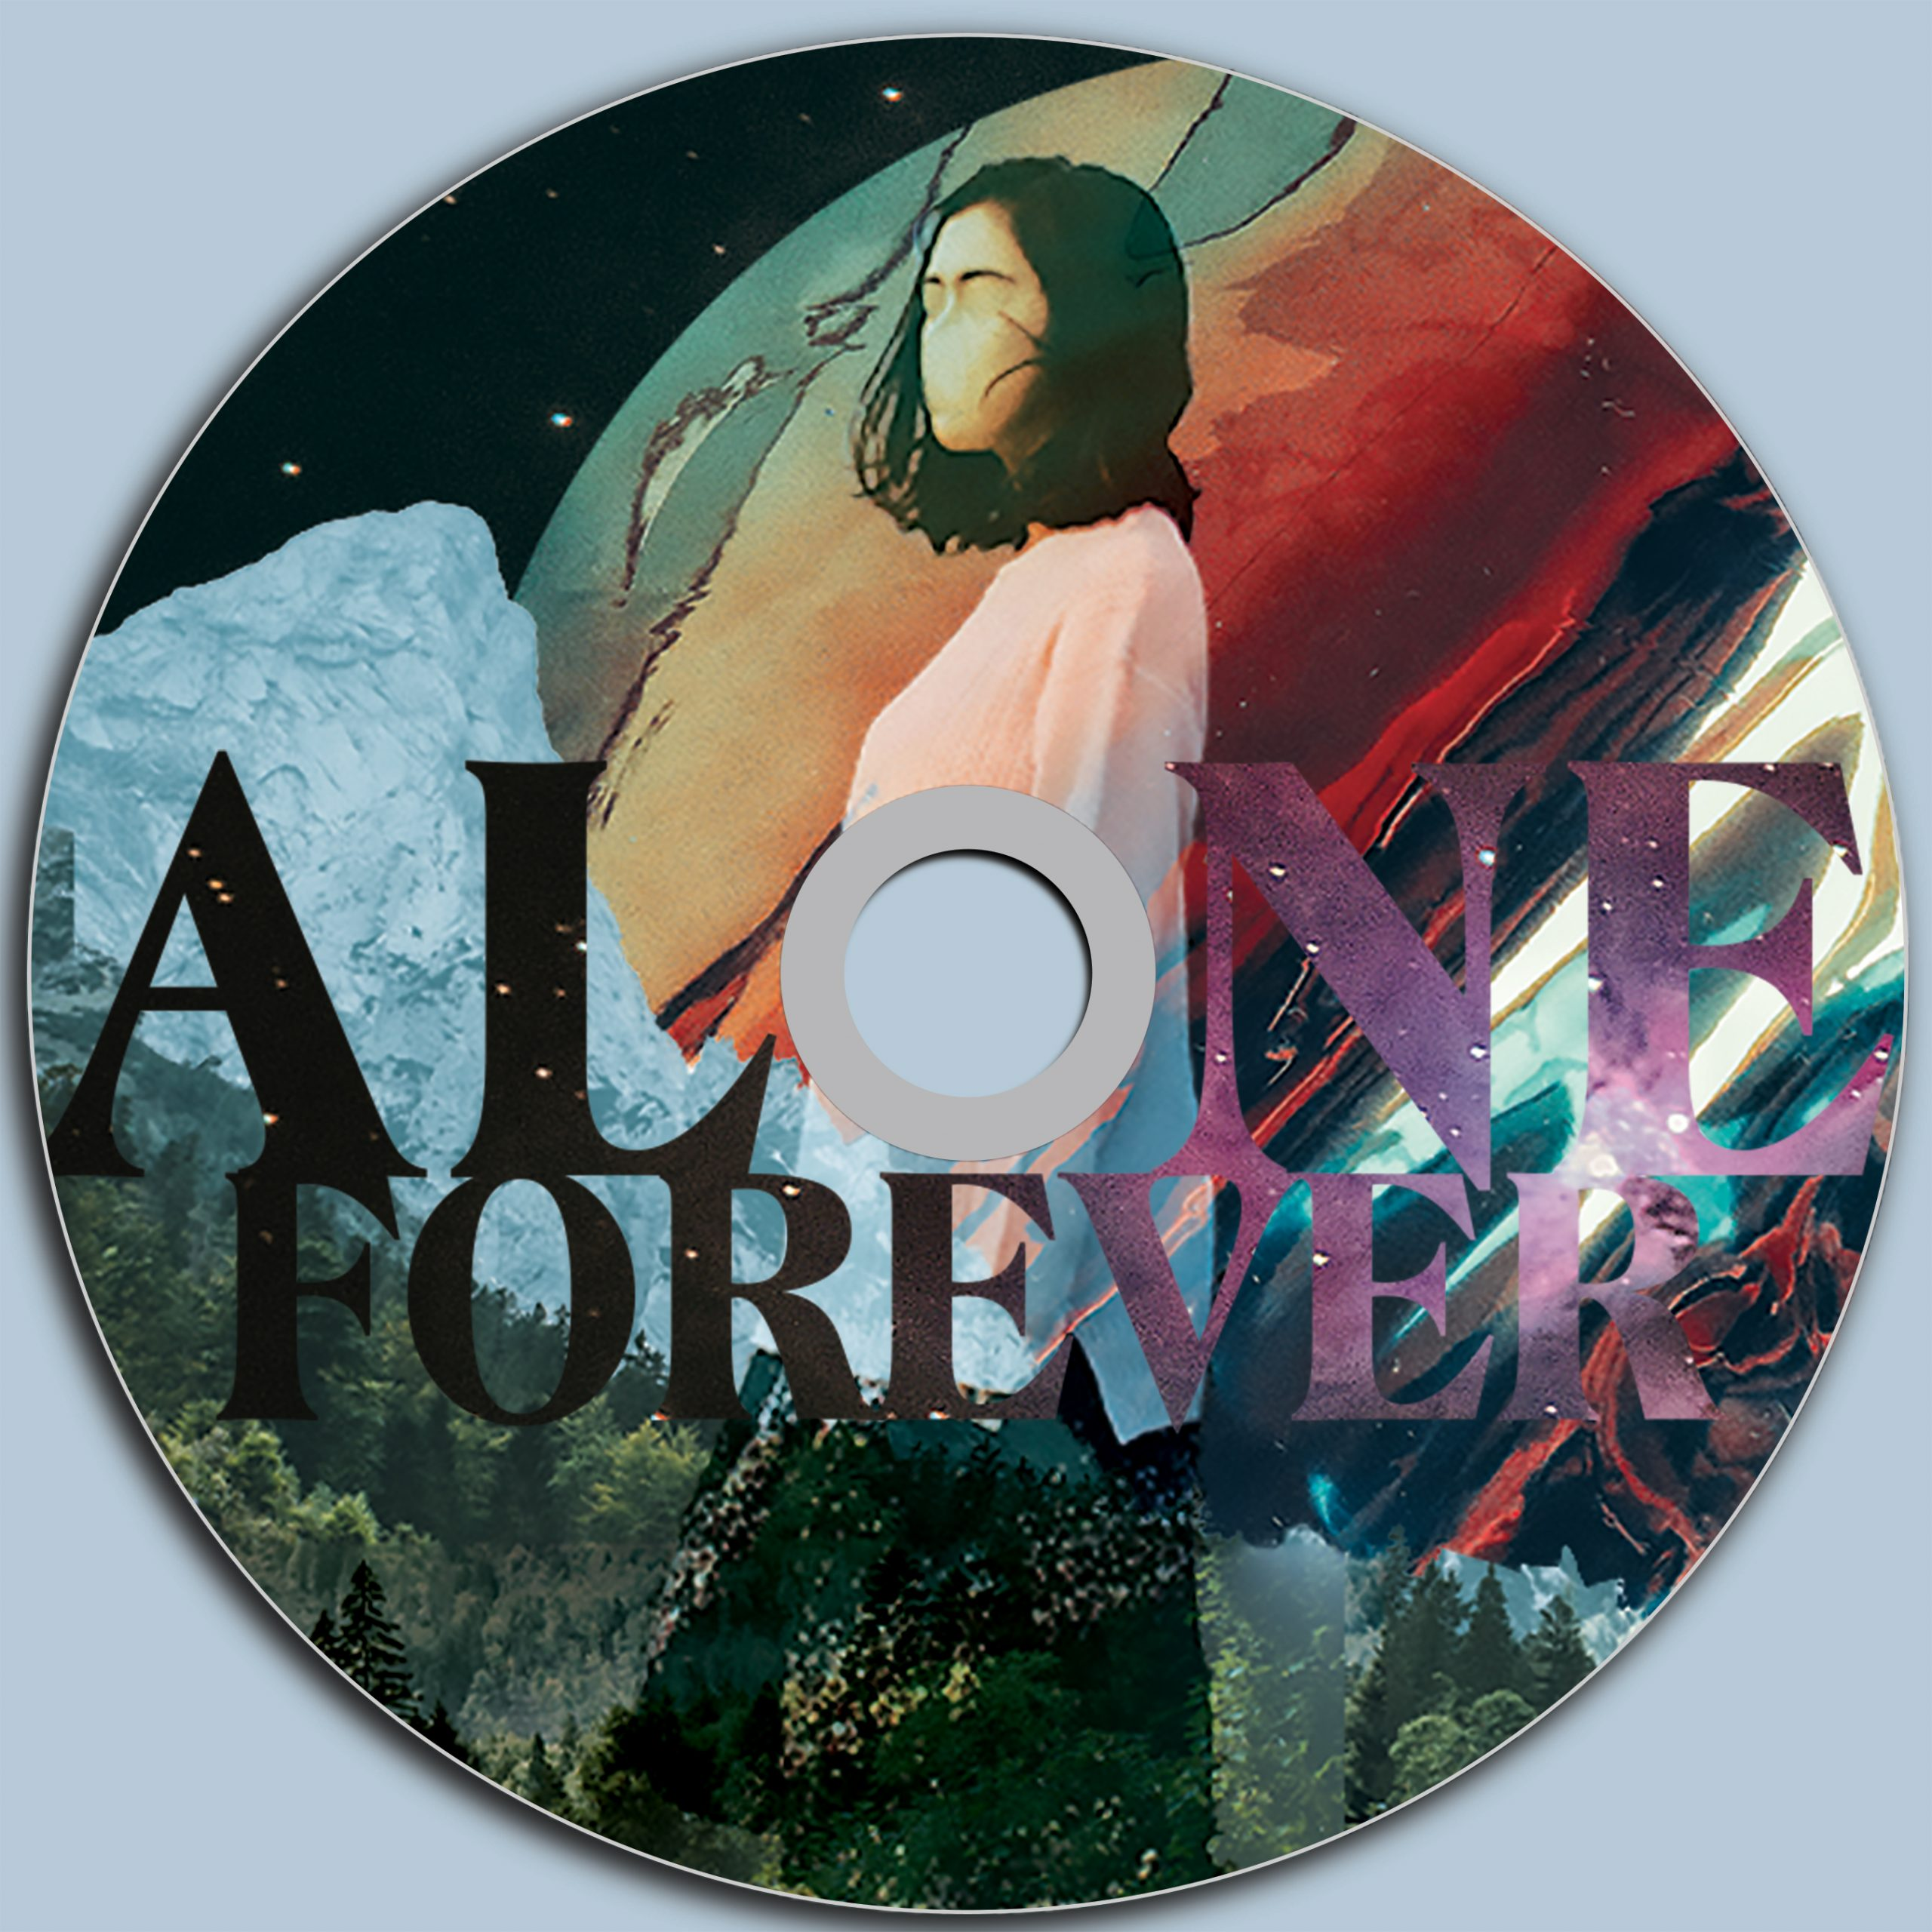 Cd design that spells Alone Forever. Girl in surreal style image in space with color planet behind her